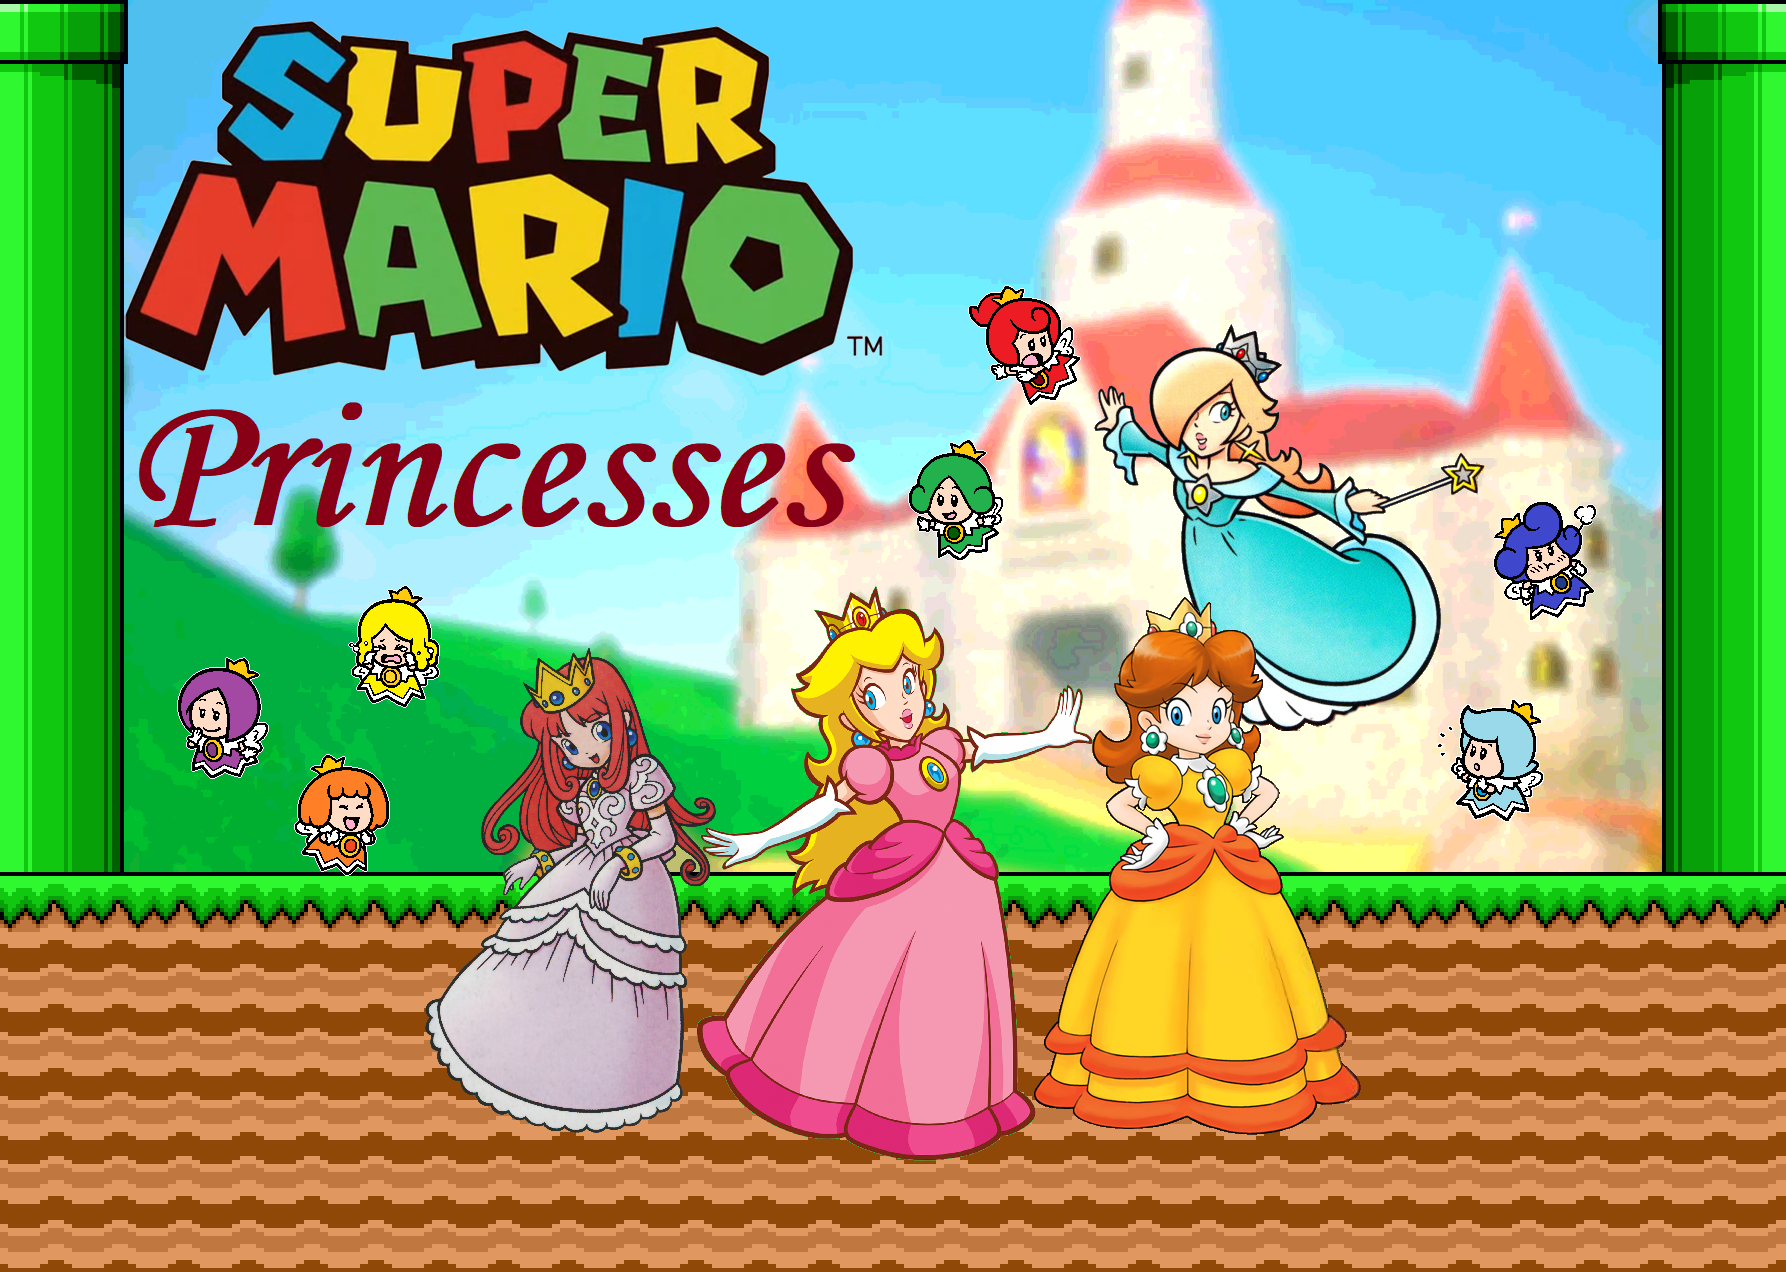 Super Mario Princesses